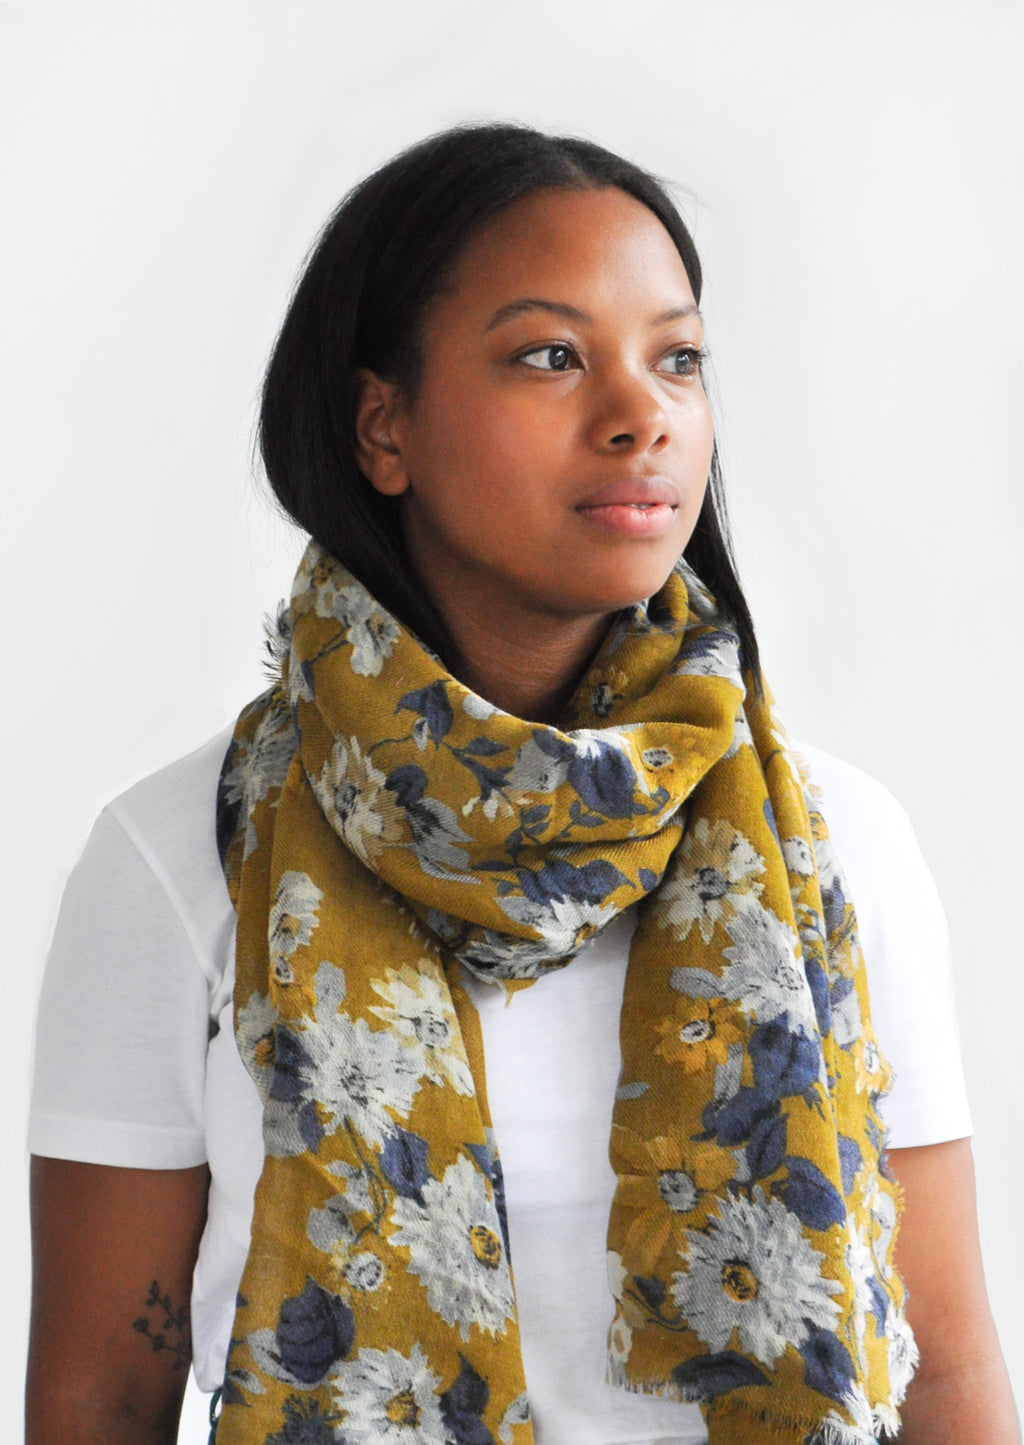 4: Product shot of woman wearing scarf and white top.